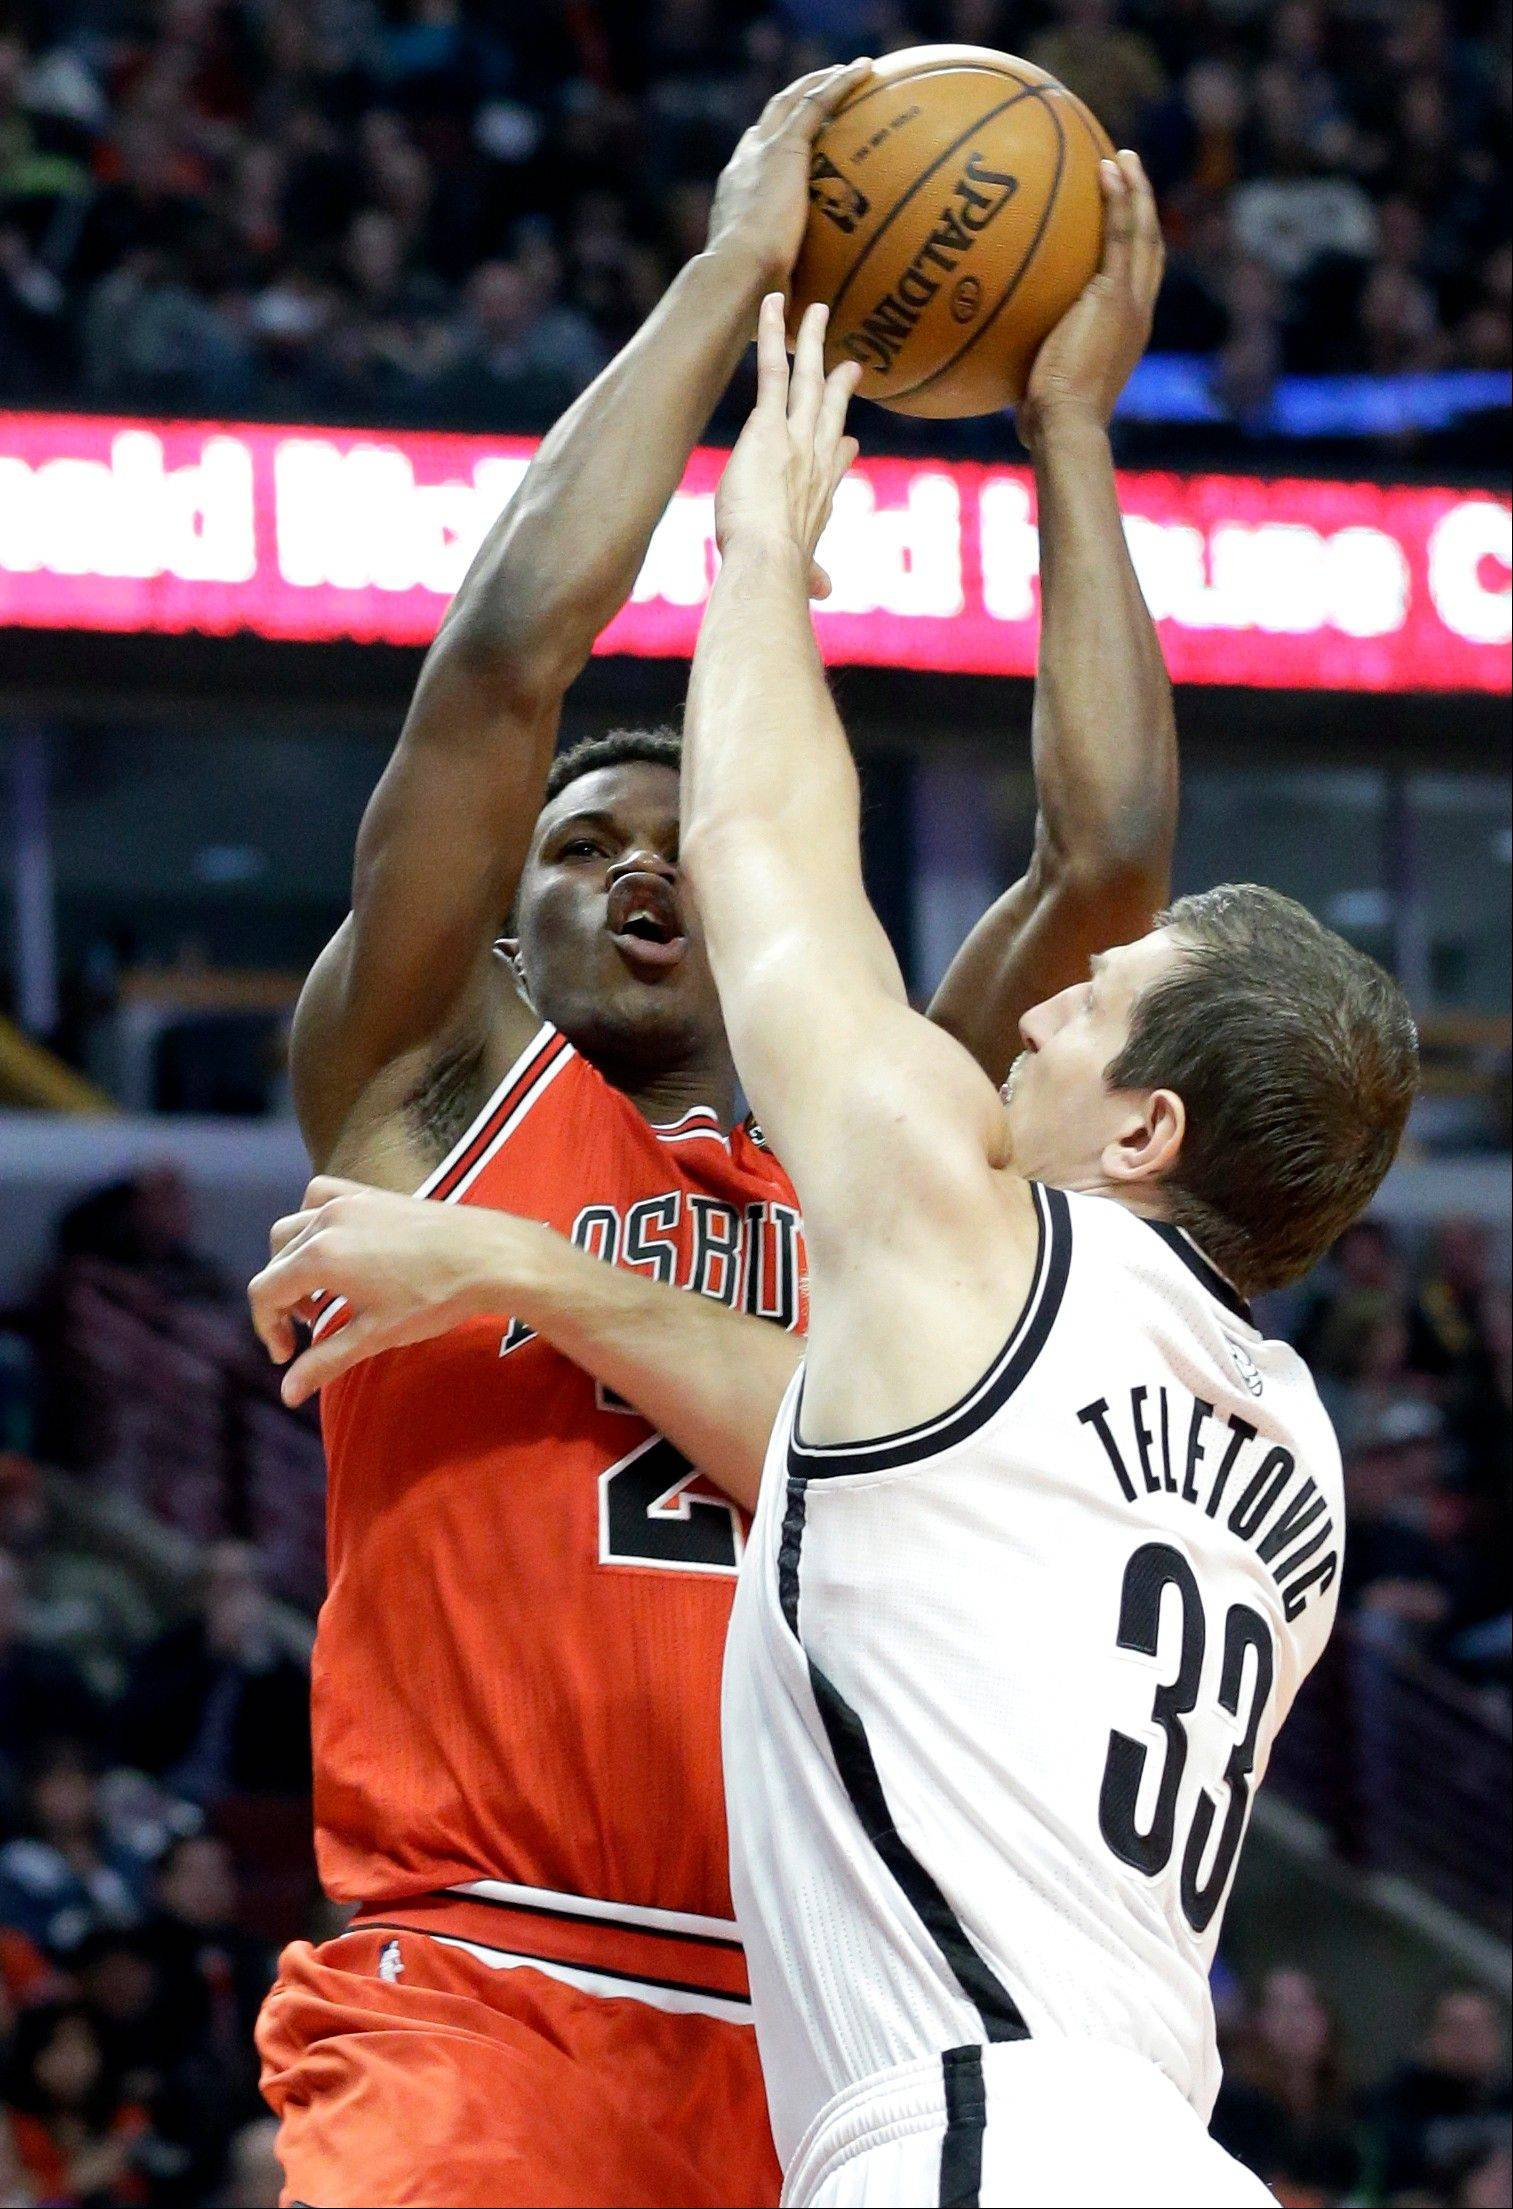 Bulls guard Jimmy Butler, left, shoots over Brooklyn Nets forward Mirza Teletovic during the second half of an NBA basketball game in Chicago on Saturday, March 2, 2013. The Bulls won 96-85.